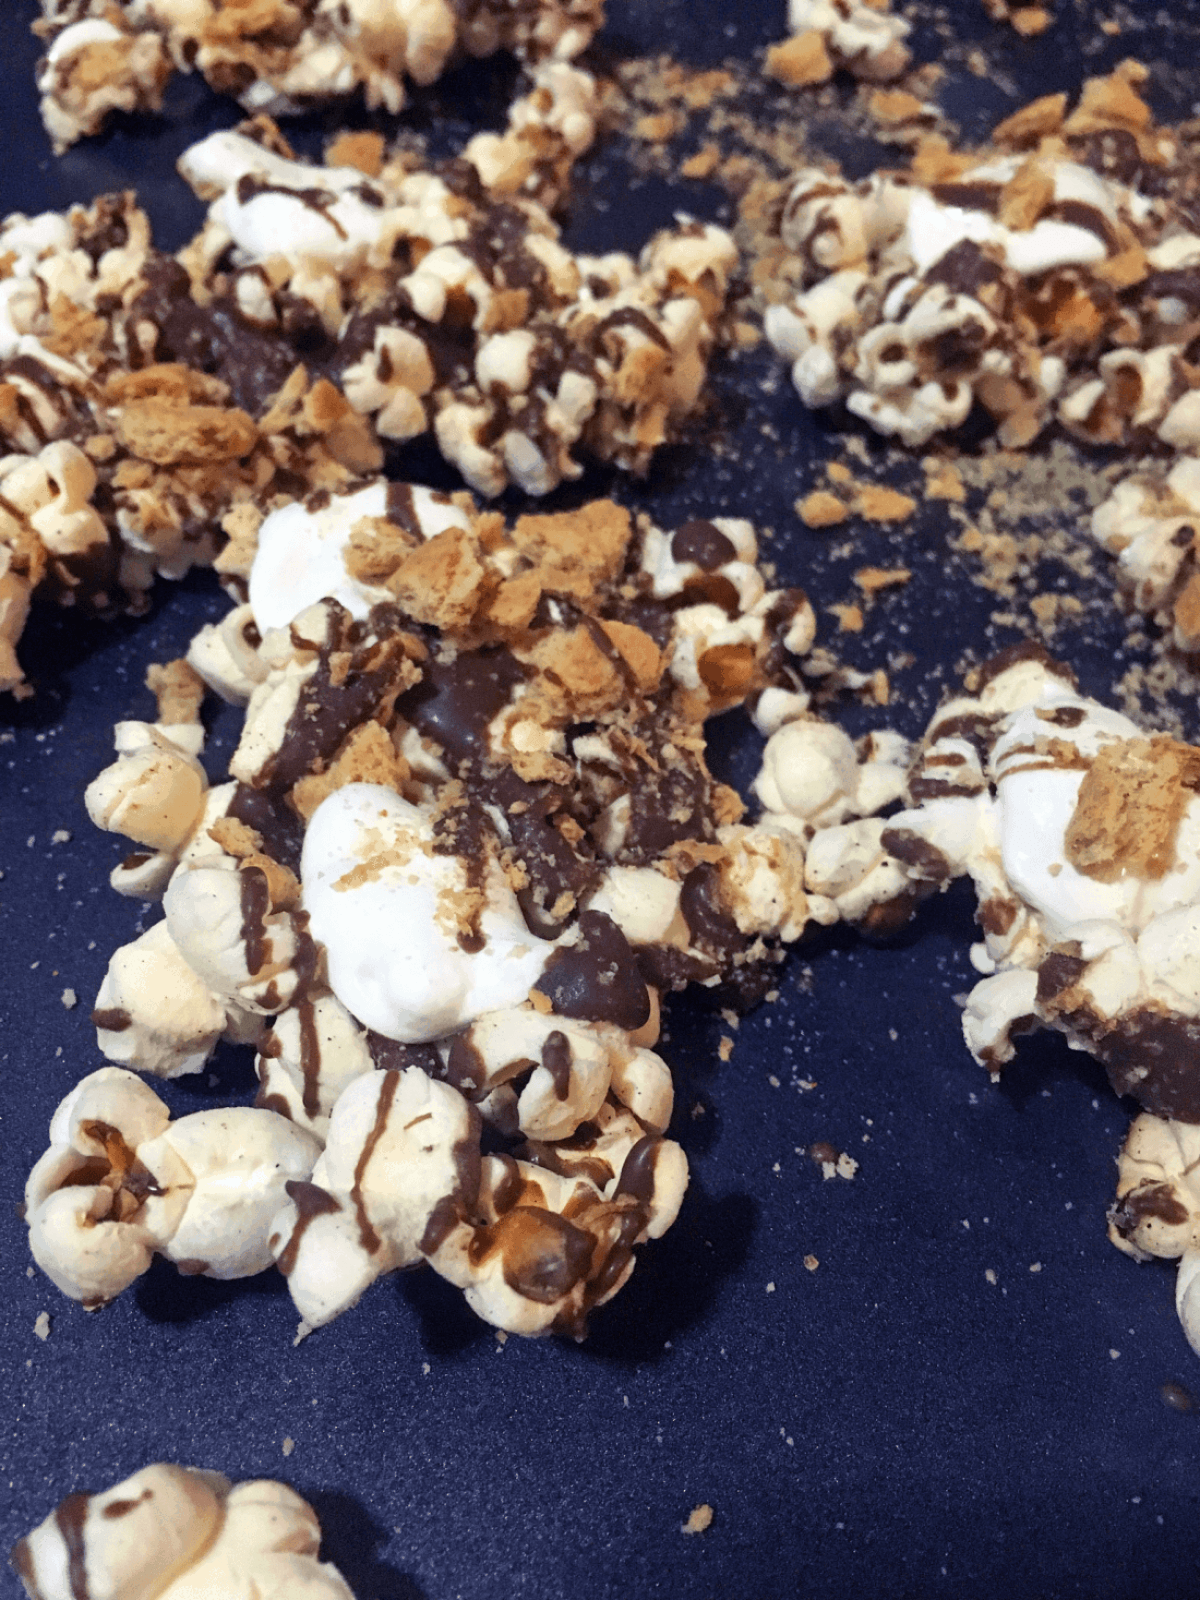 Smore Popcorn In-Process #6